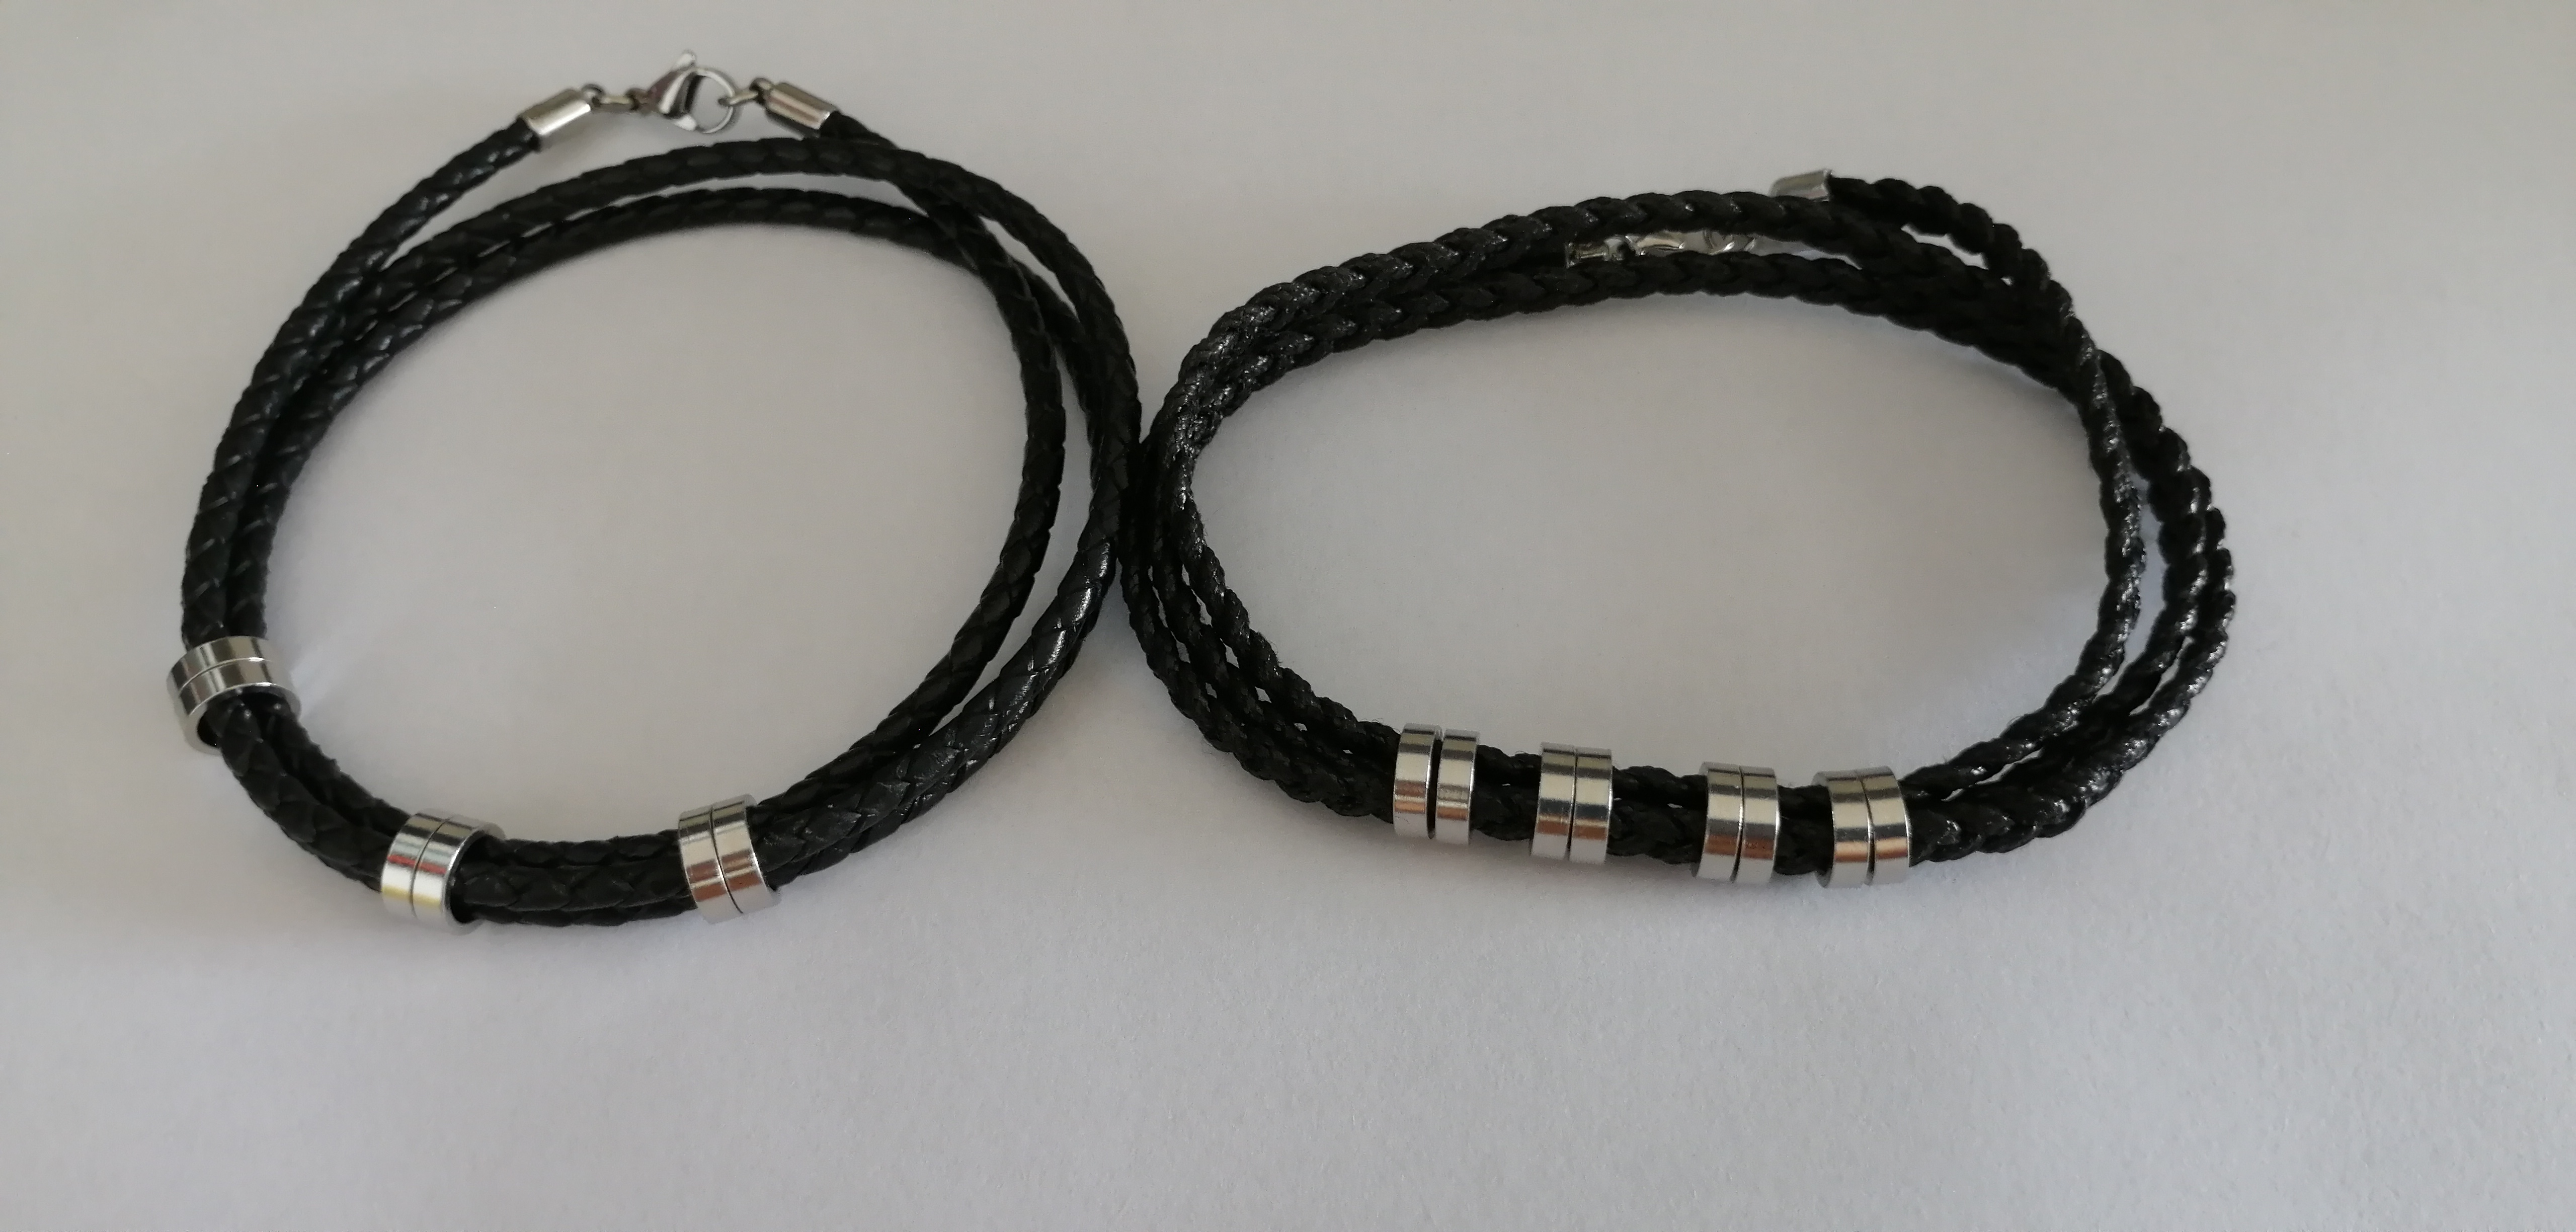 Factory Customize Stylish Knitting Genuine Black Braided Leather Cord Wax Rope With Small Stainless Steel Beads Bangle Bracelet